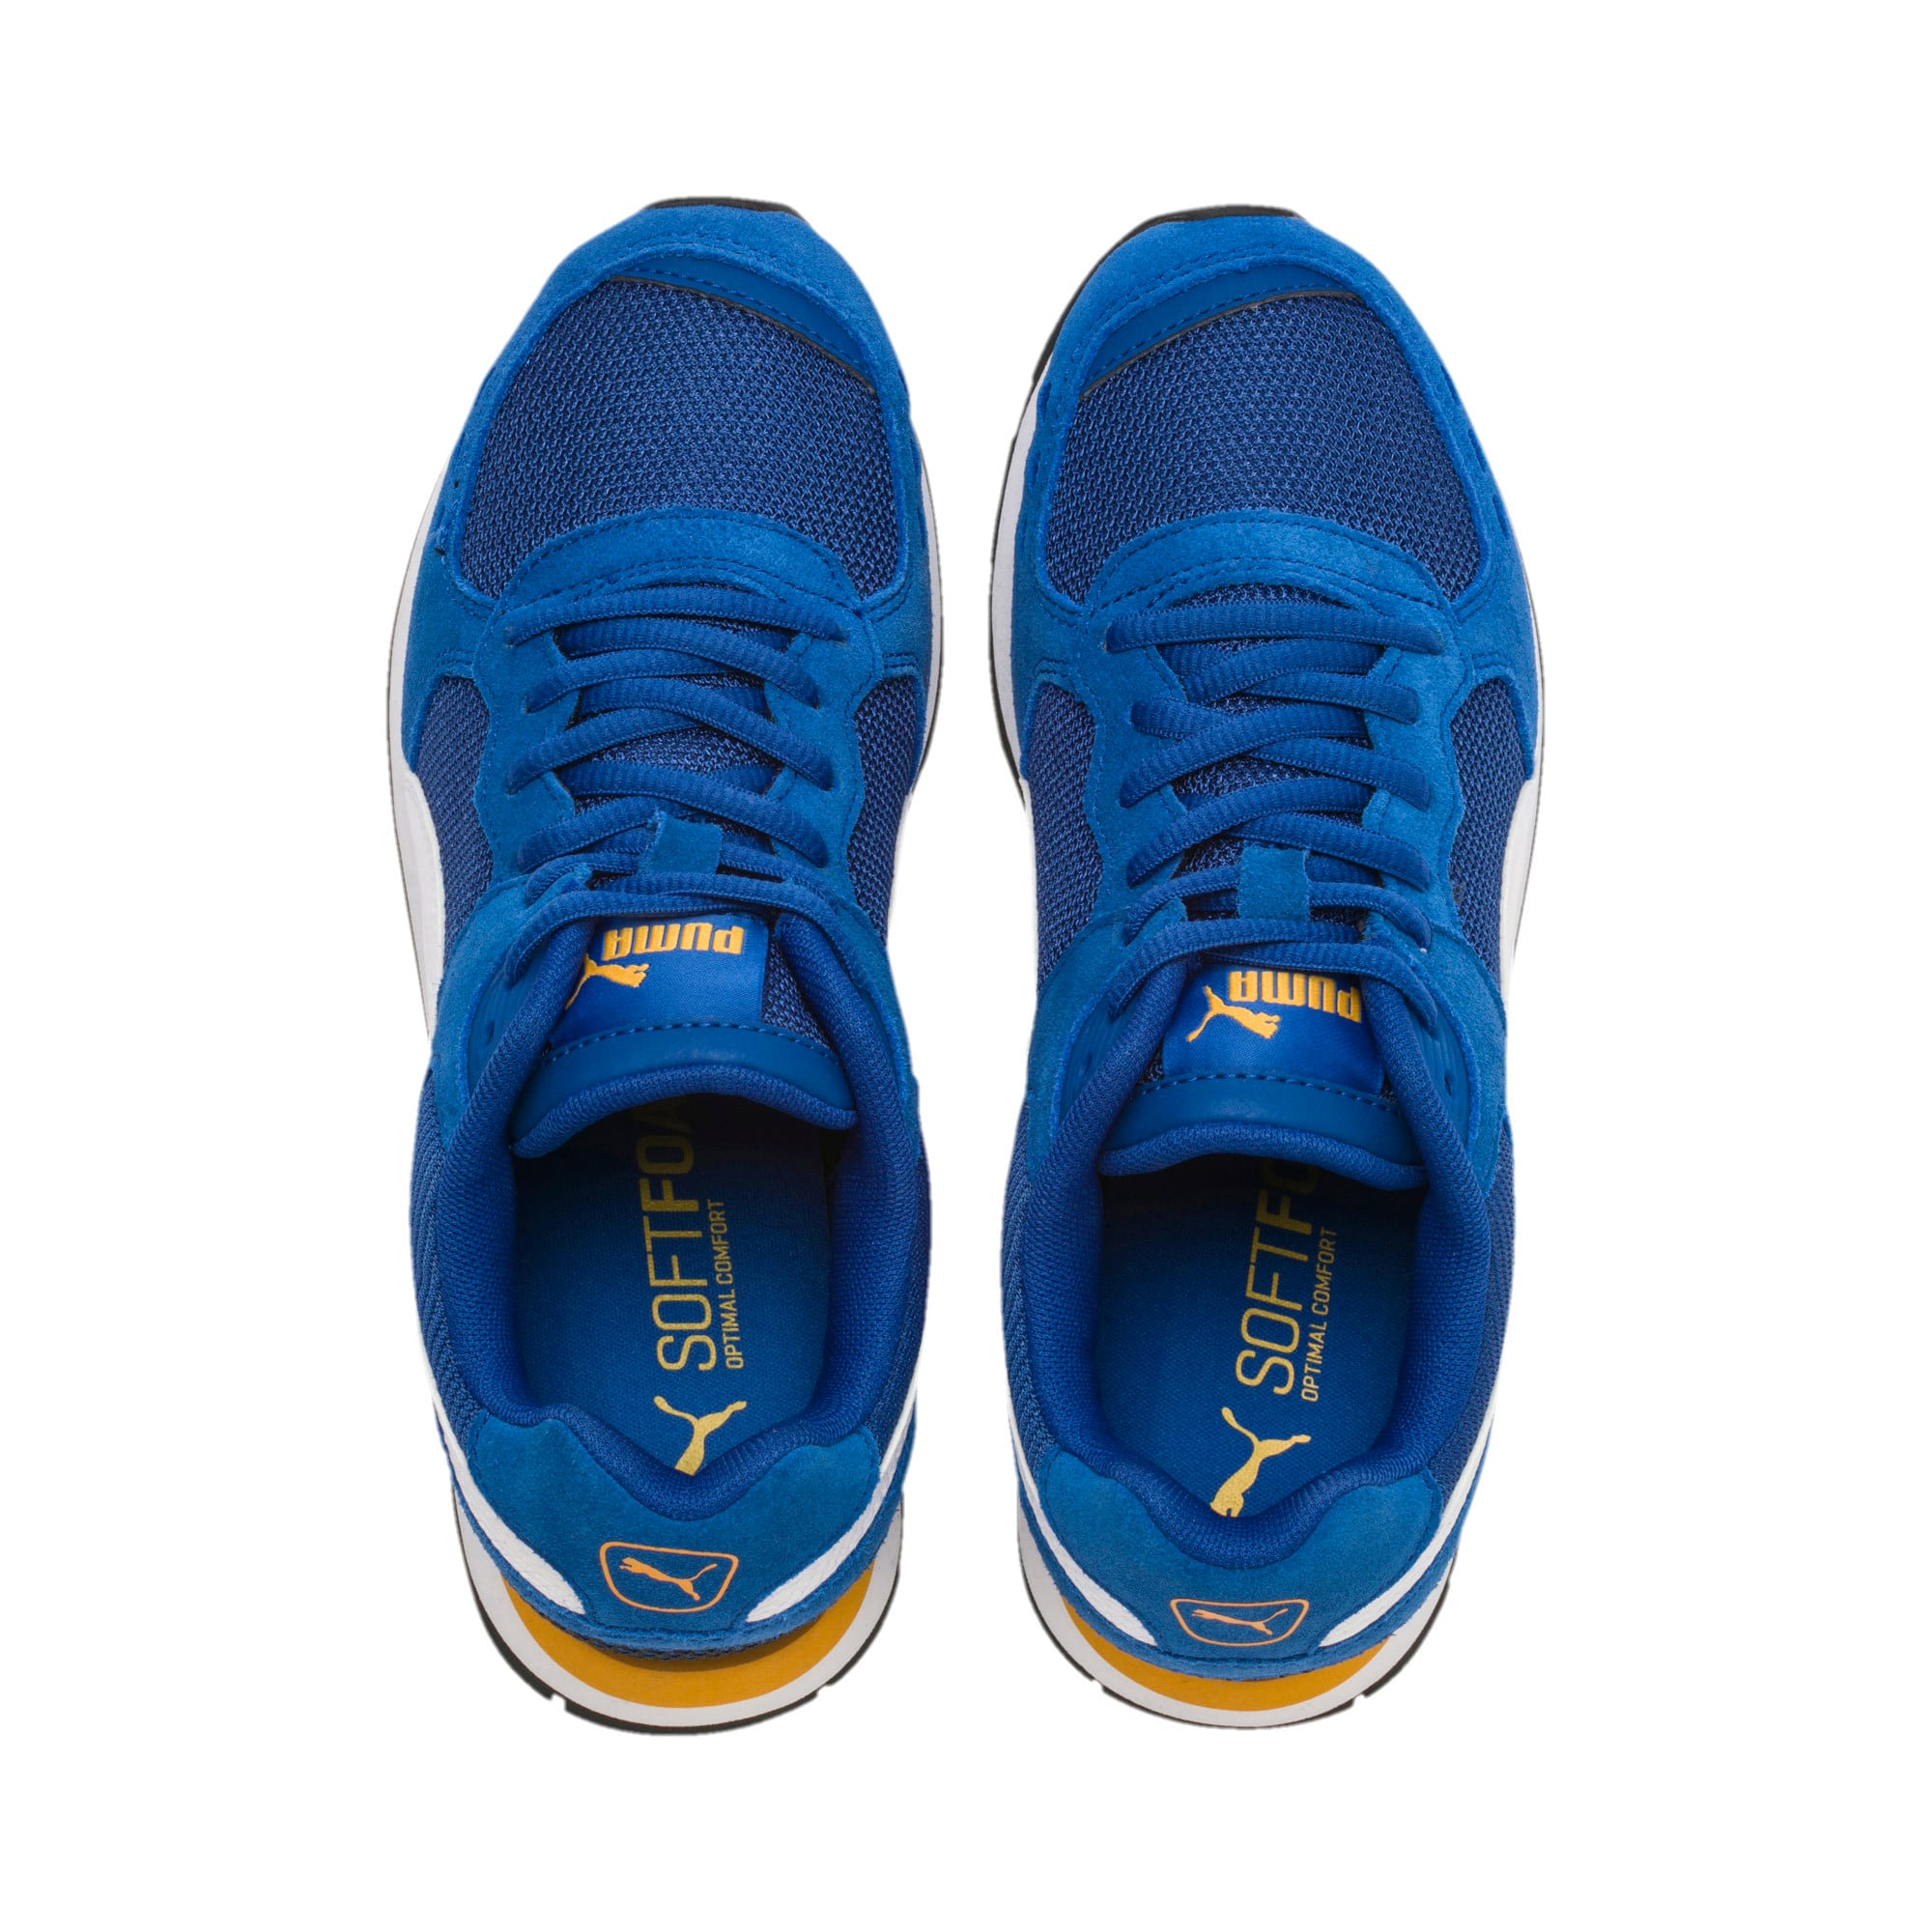 Thumbnail 6 of Vista Youth Trainers, Galaxy Blue-Puma White, medium-IND